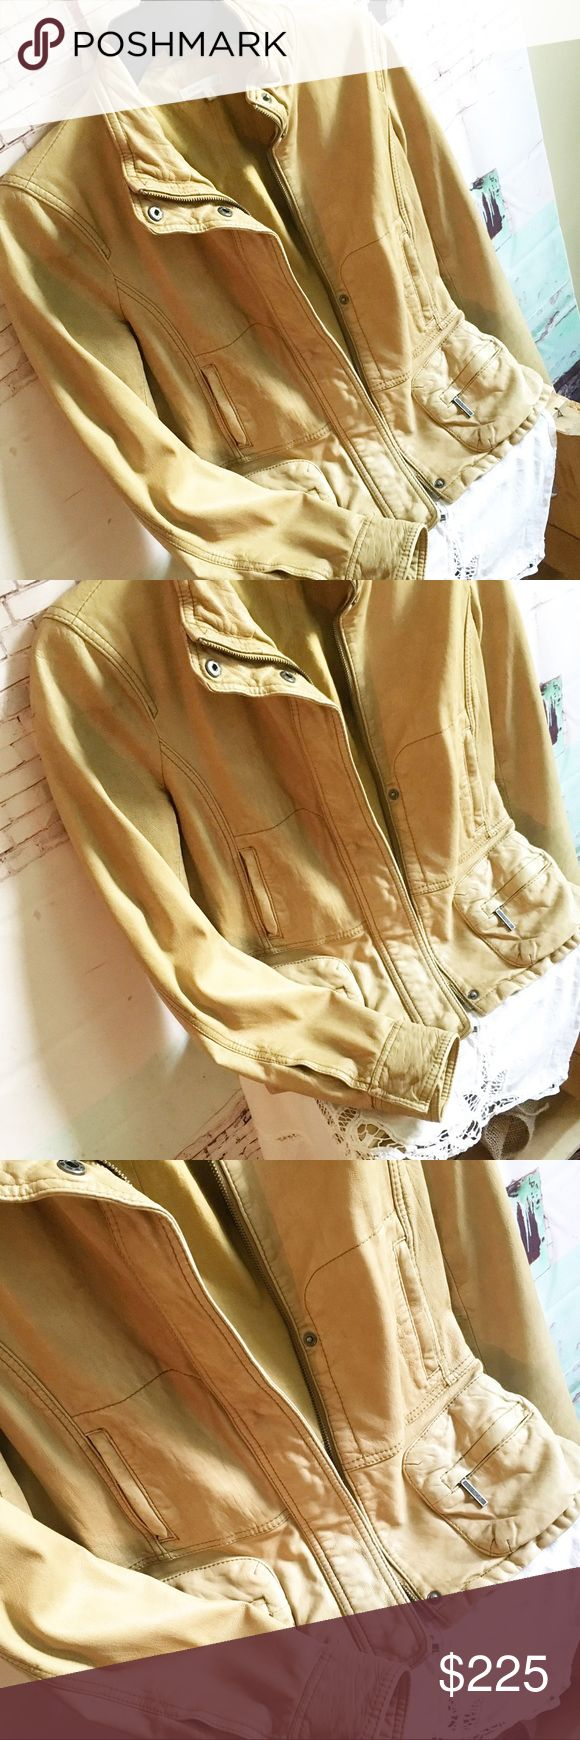 "GORGEOUS VINCE TAN LEATHER JACKET, Size M VINCE Leather Jacket, Size Medium Beautiful tan buttery soft leather jacket.  No rips, tears or stains.  Measures 19"" in chest, 15.5 shoulder to shoulder, 23"" long and sleeve length is 25"".  This jacket retailed at $700. Vince Jackets & Coats"